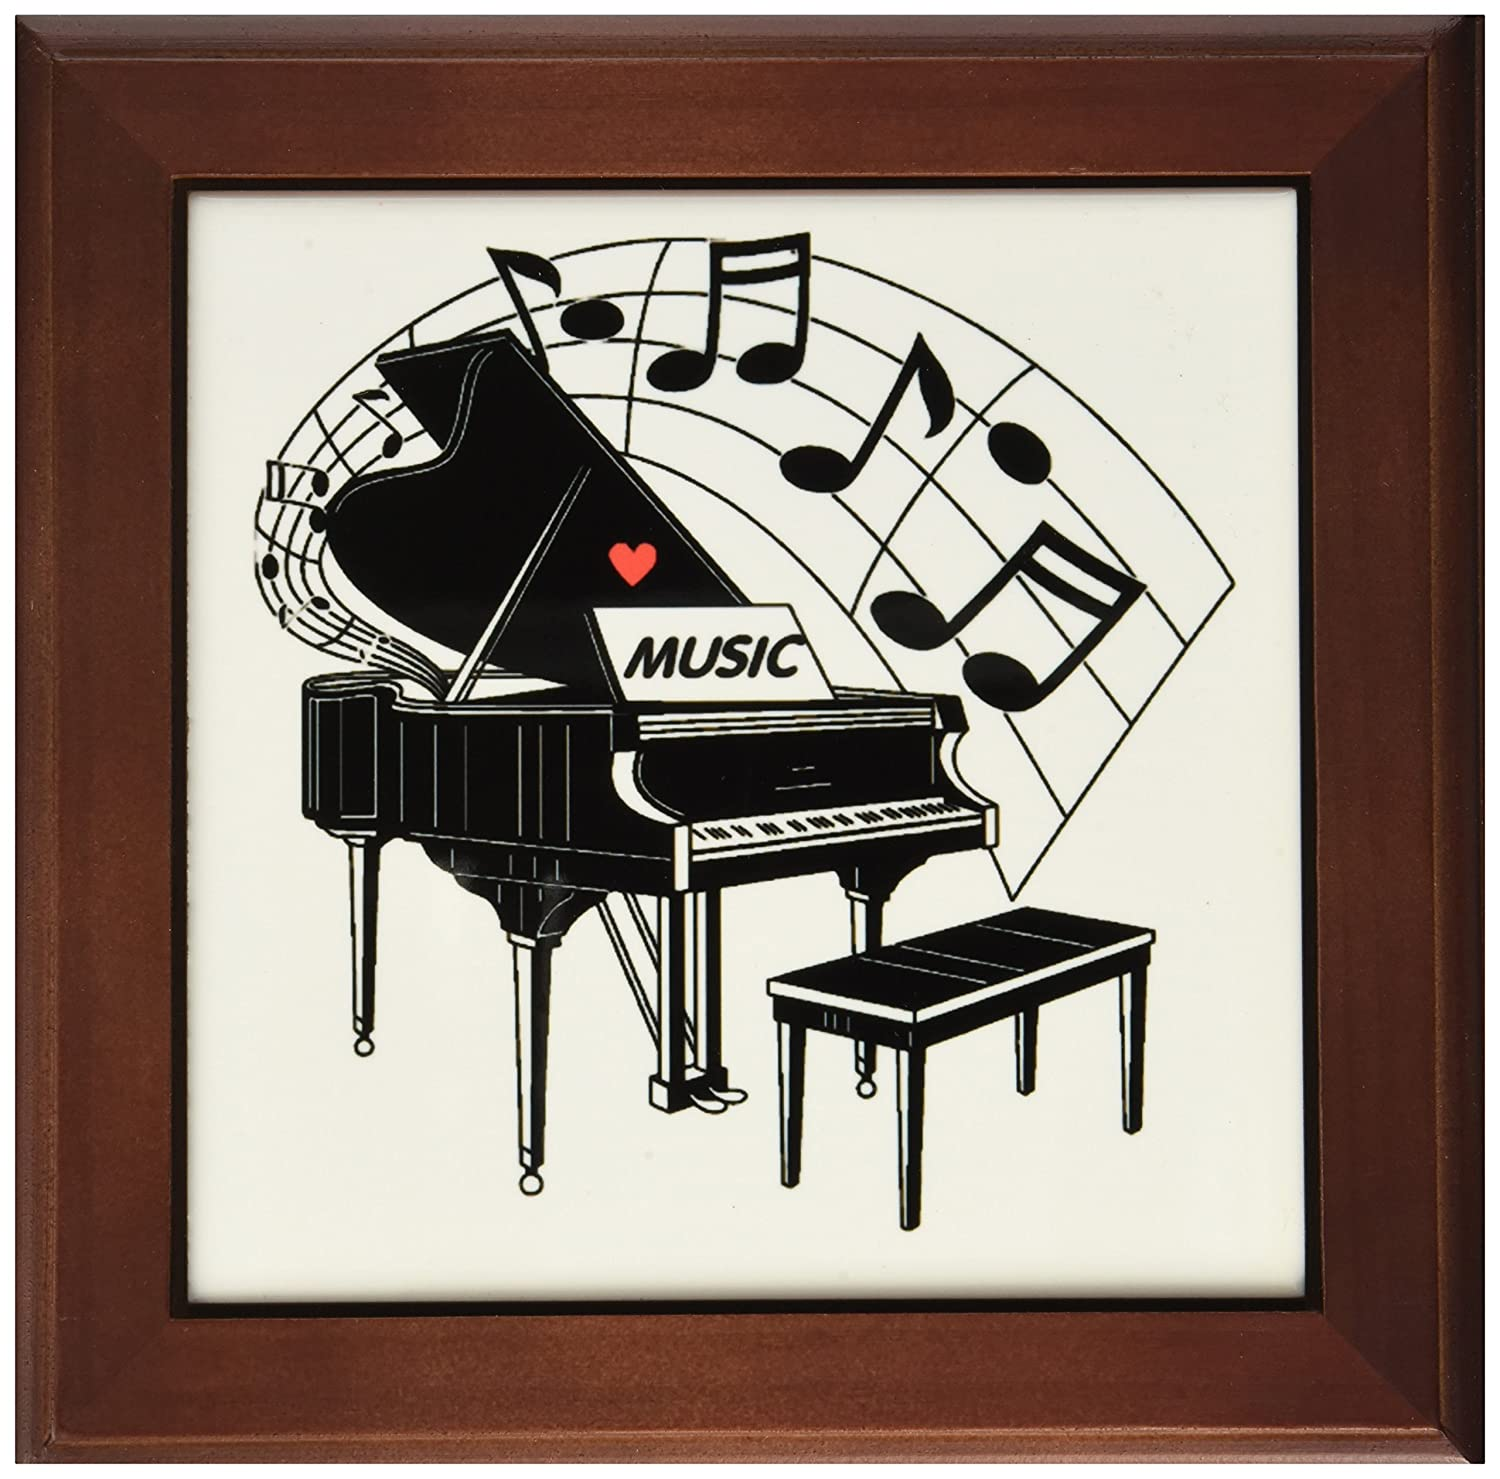 8 by 8-Inch 3dRose ft/_44809/_1 Black Piano with Dancing Notes N Love Music on it Framed Tile